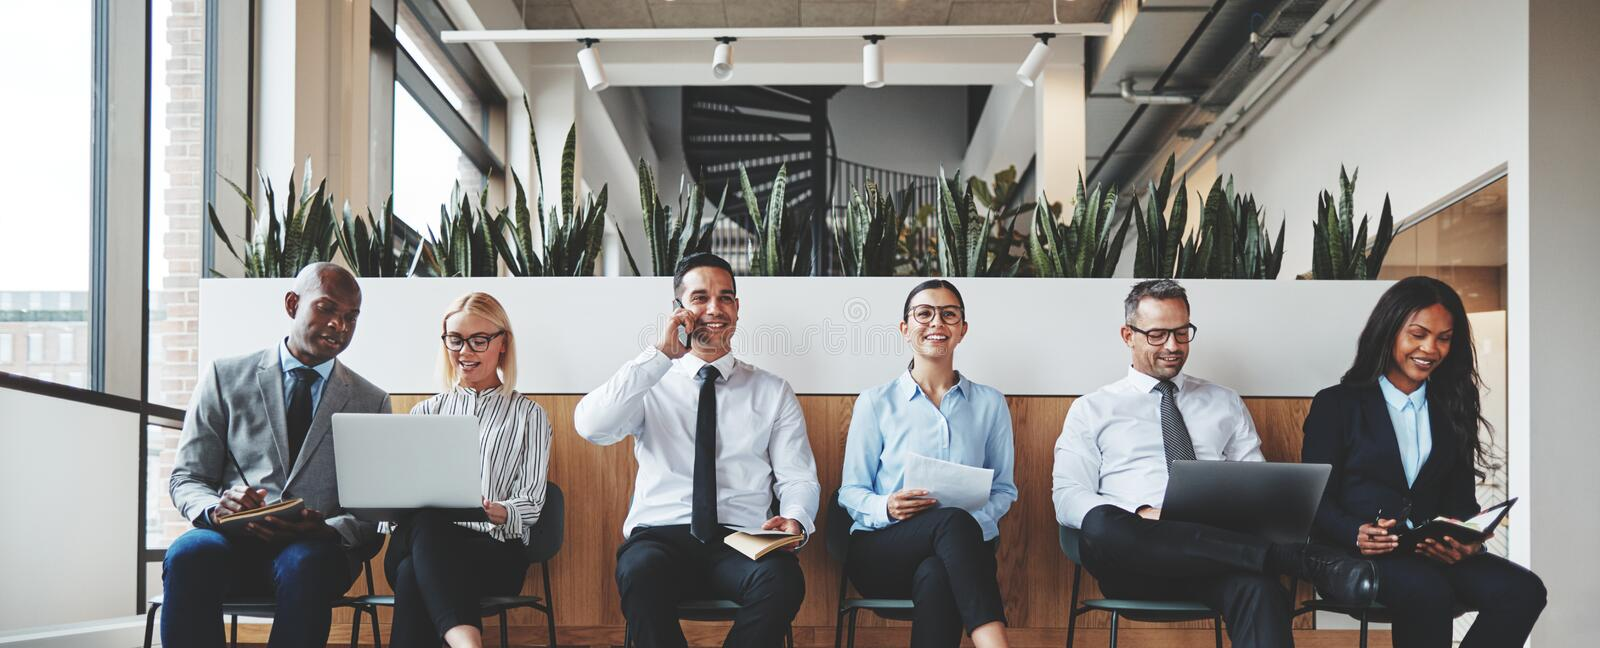 Smiling group of diverse businesspeople waiting in an office rec stock photo